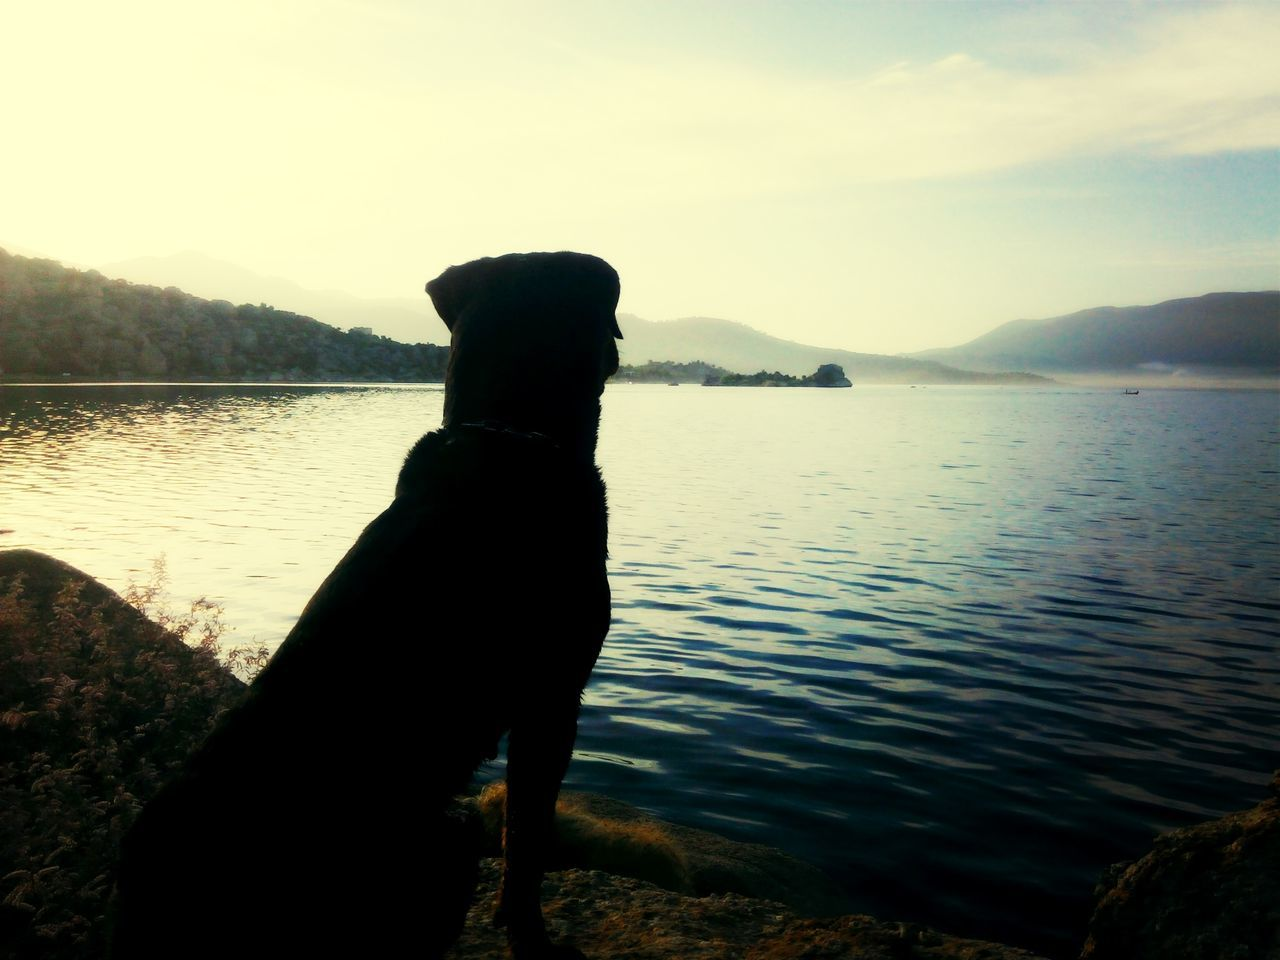 water, lake, nature, mountain, outdoors, beauty in nature, scenics, lakeshore, sky, one person, tranquility, dog, tranquil scene, silhouette, pets, sunset, day, real people, domestic animals, tree, animal themes, mammal, people